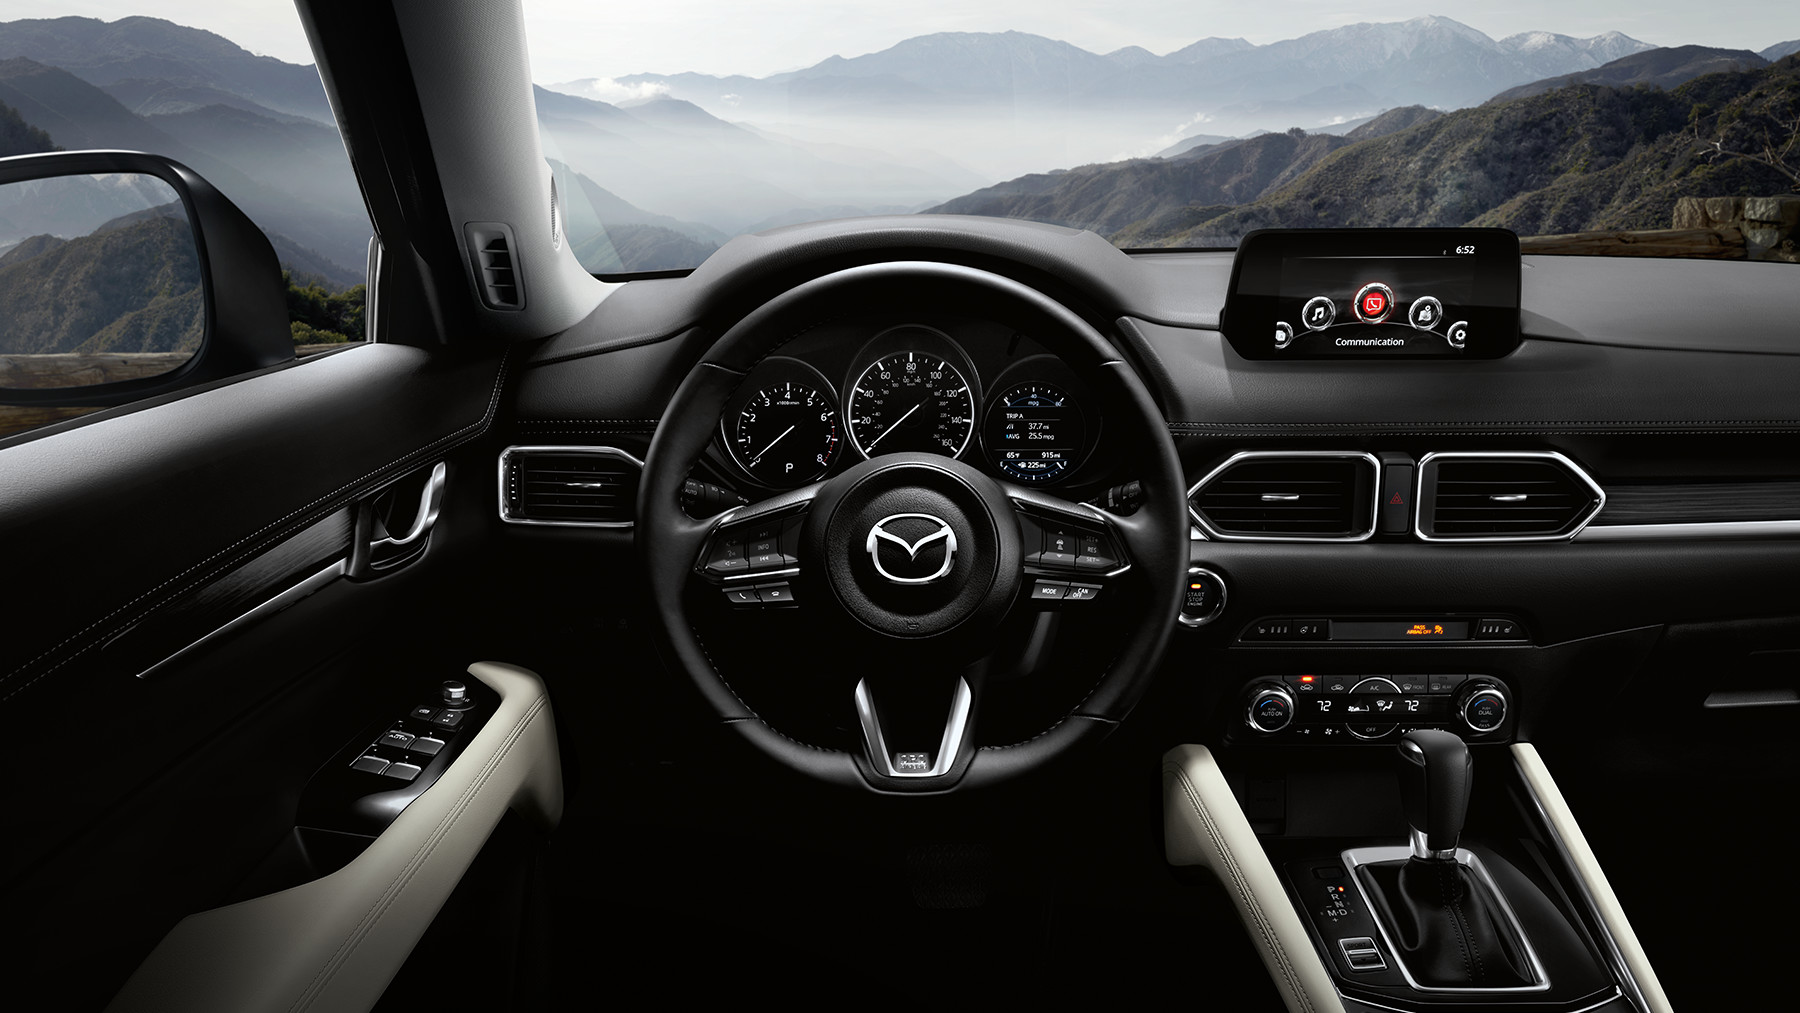 Dashboard-mounted Amenities within the Mazda CX-5